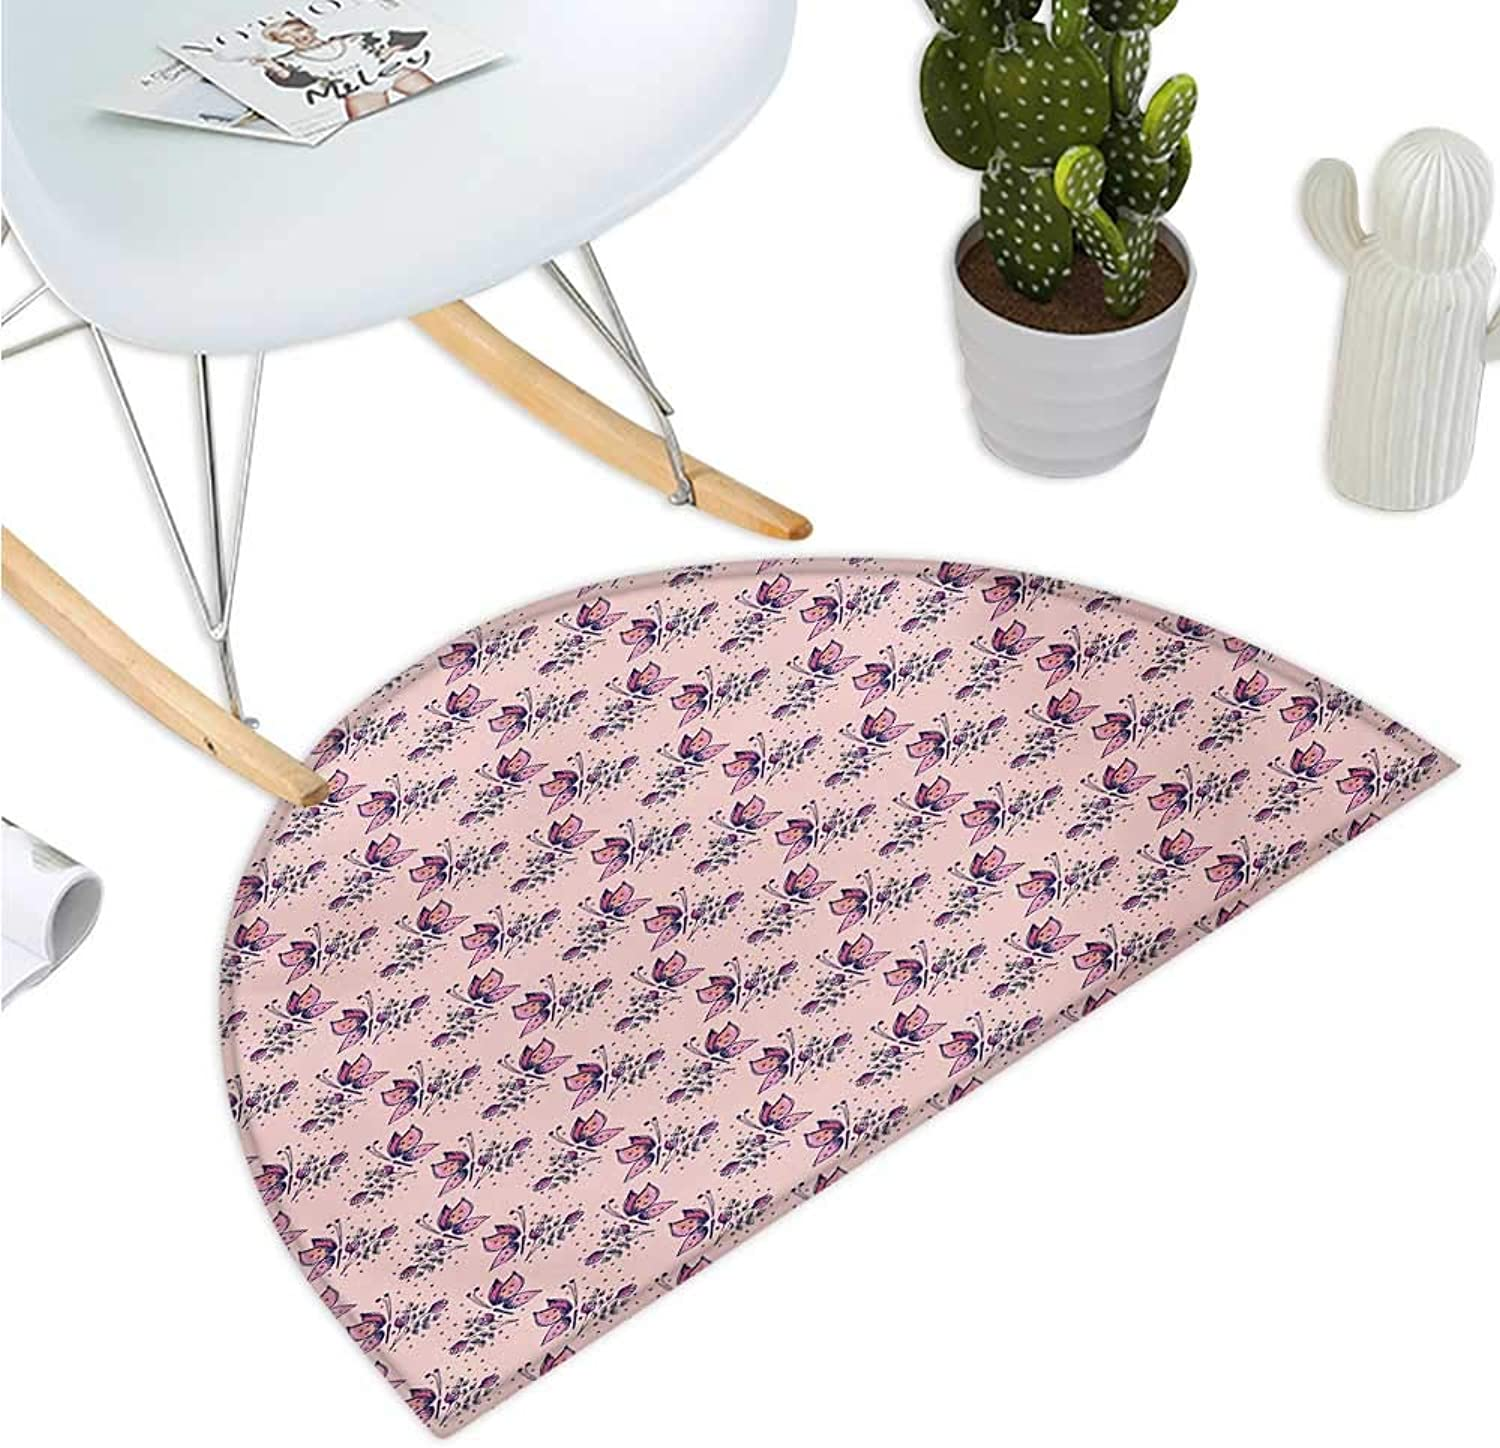 Spring Semicircular Cushion colorful Butterfly Petals Bouquet Vivid Inspirational Hand Drawn Print Entry Door Mat H 35.4  xD 53.1  Pale Pink Purple Salmon